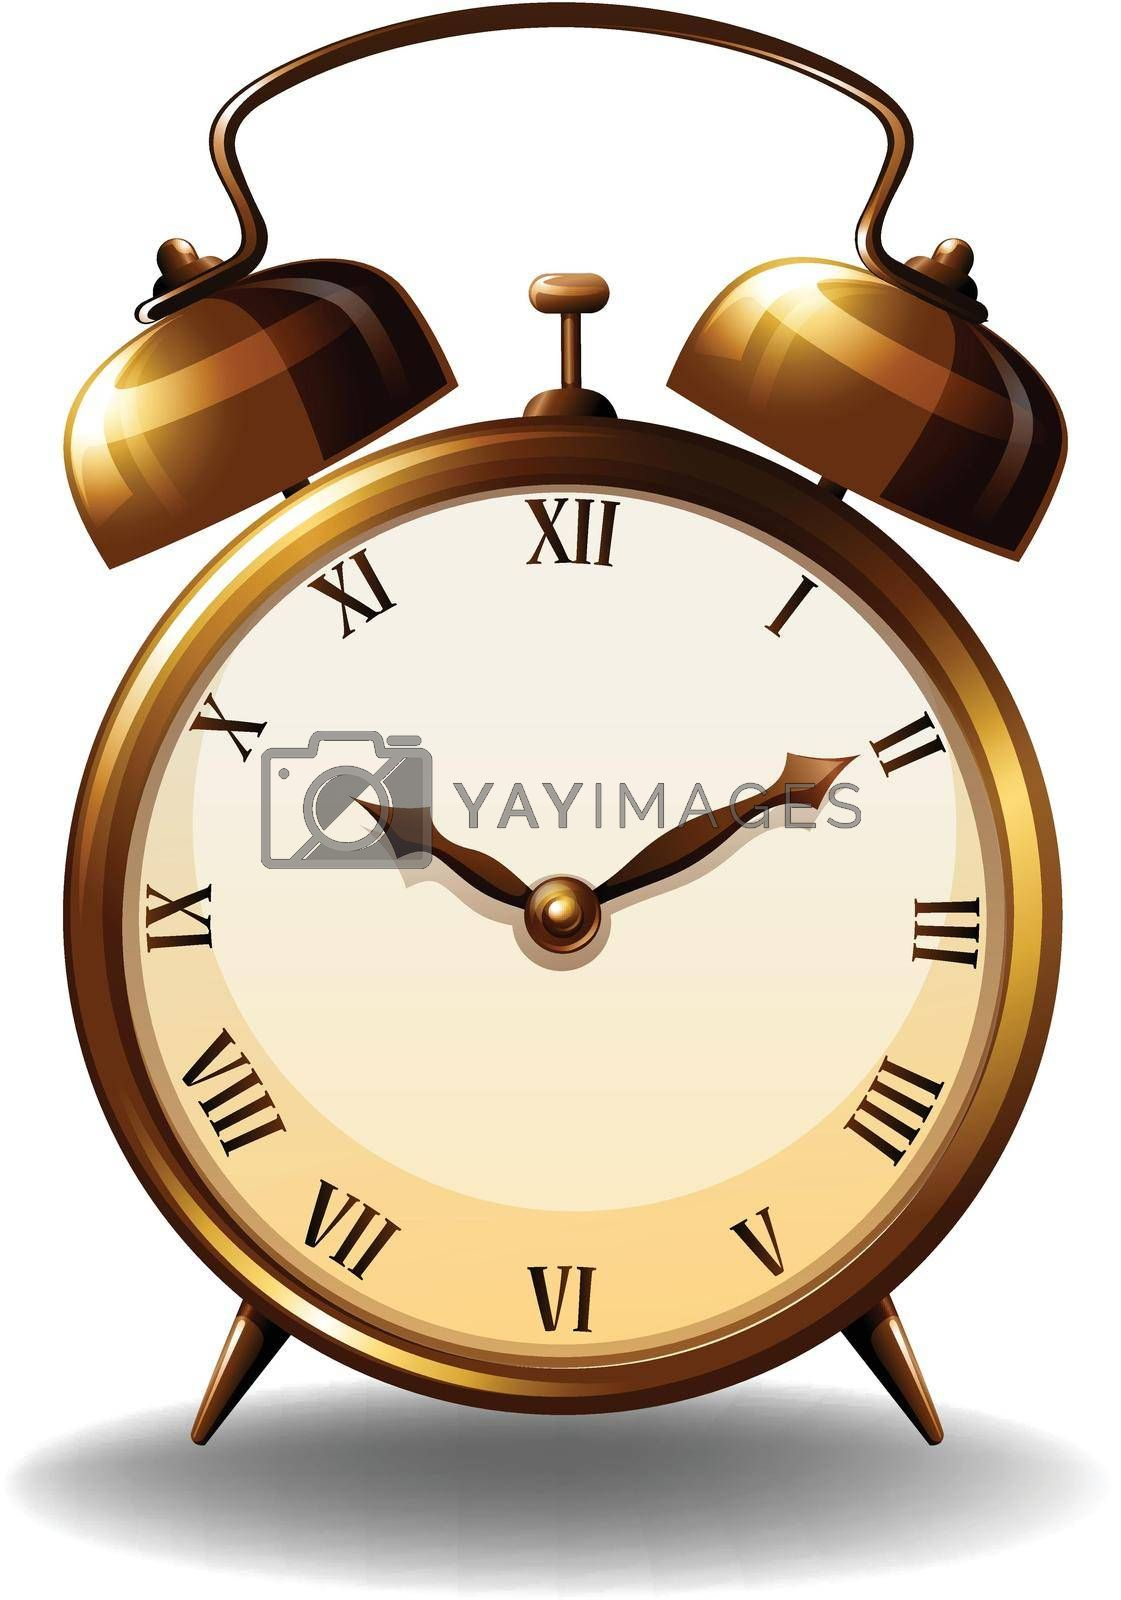 Royalty free image of Clock by iimages